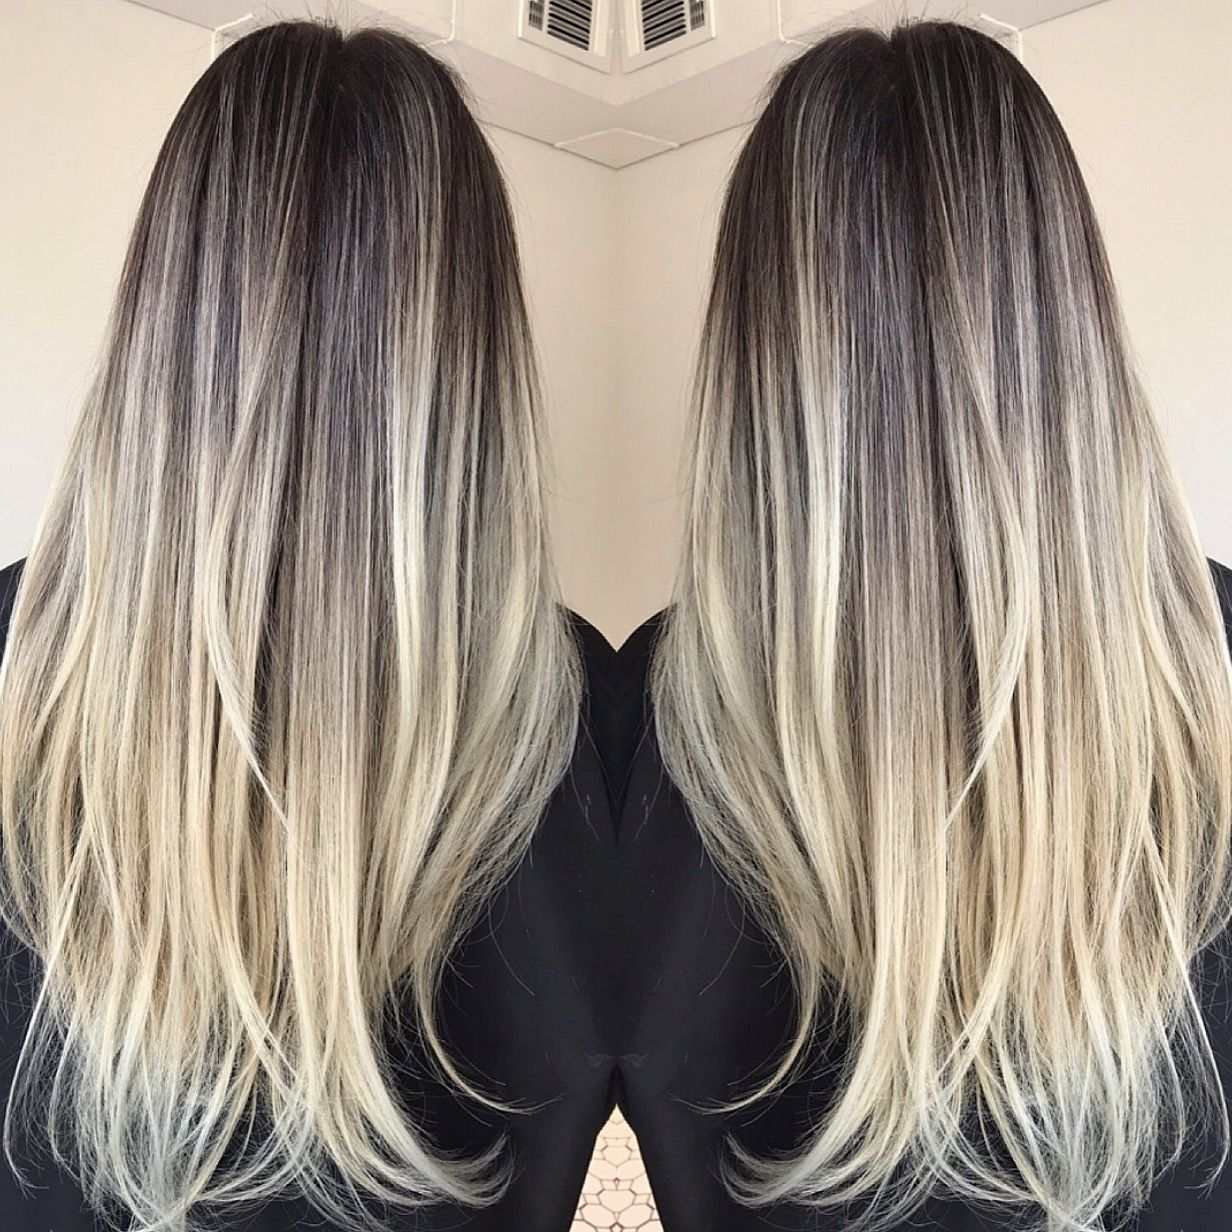 instagram hairbypf balayage natural haircolor hairstyle bronde blonde brunette. Black Bedroom Furniture Sets. Home Design Ideas